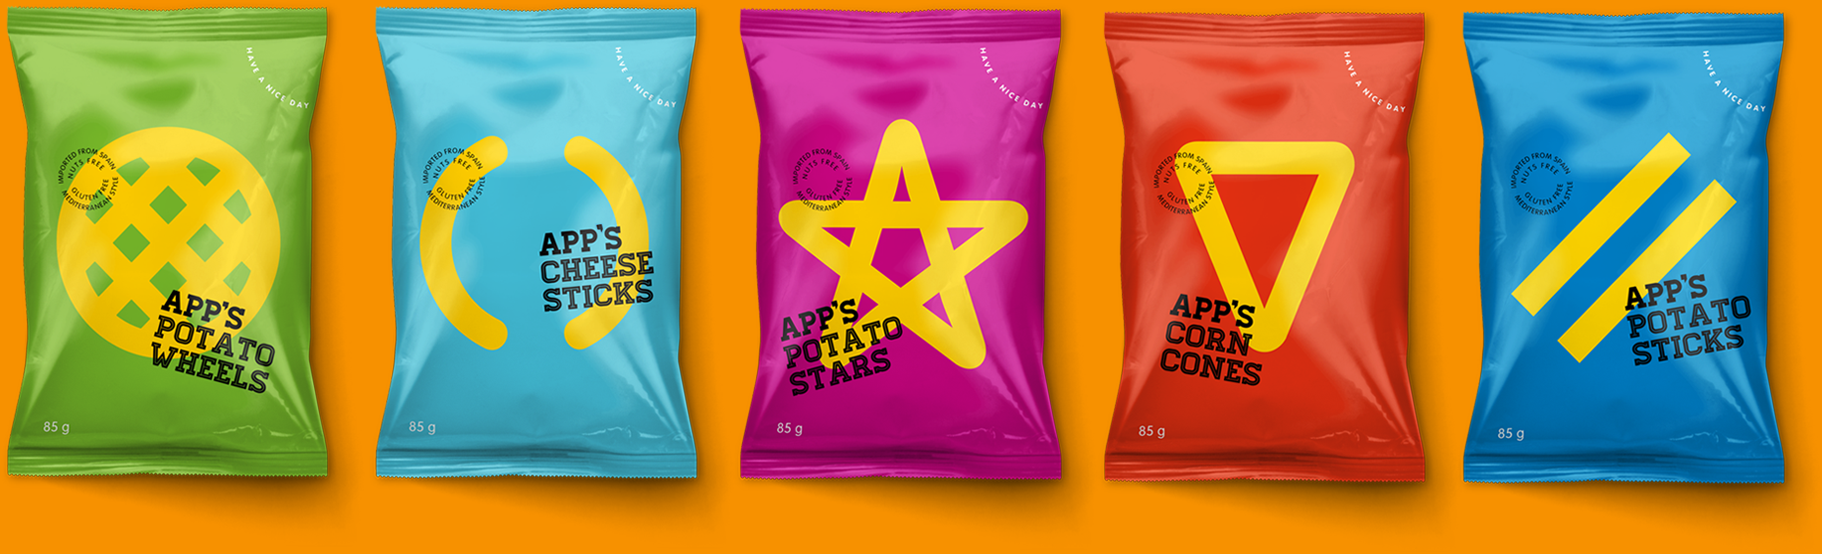 App's Diseño Packaging Snack Snacks y Aperitivos